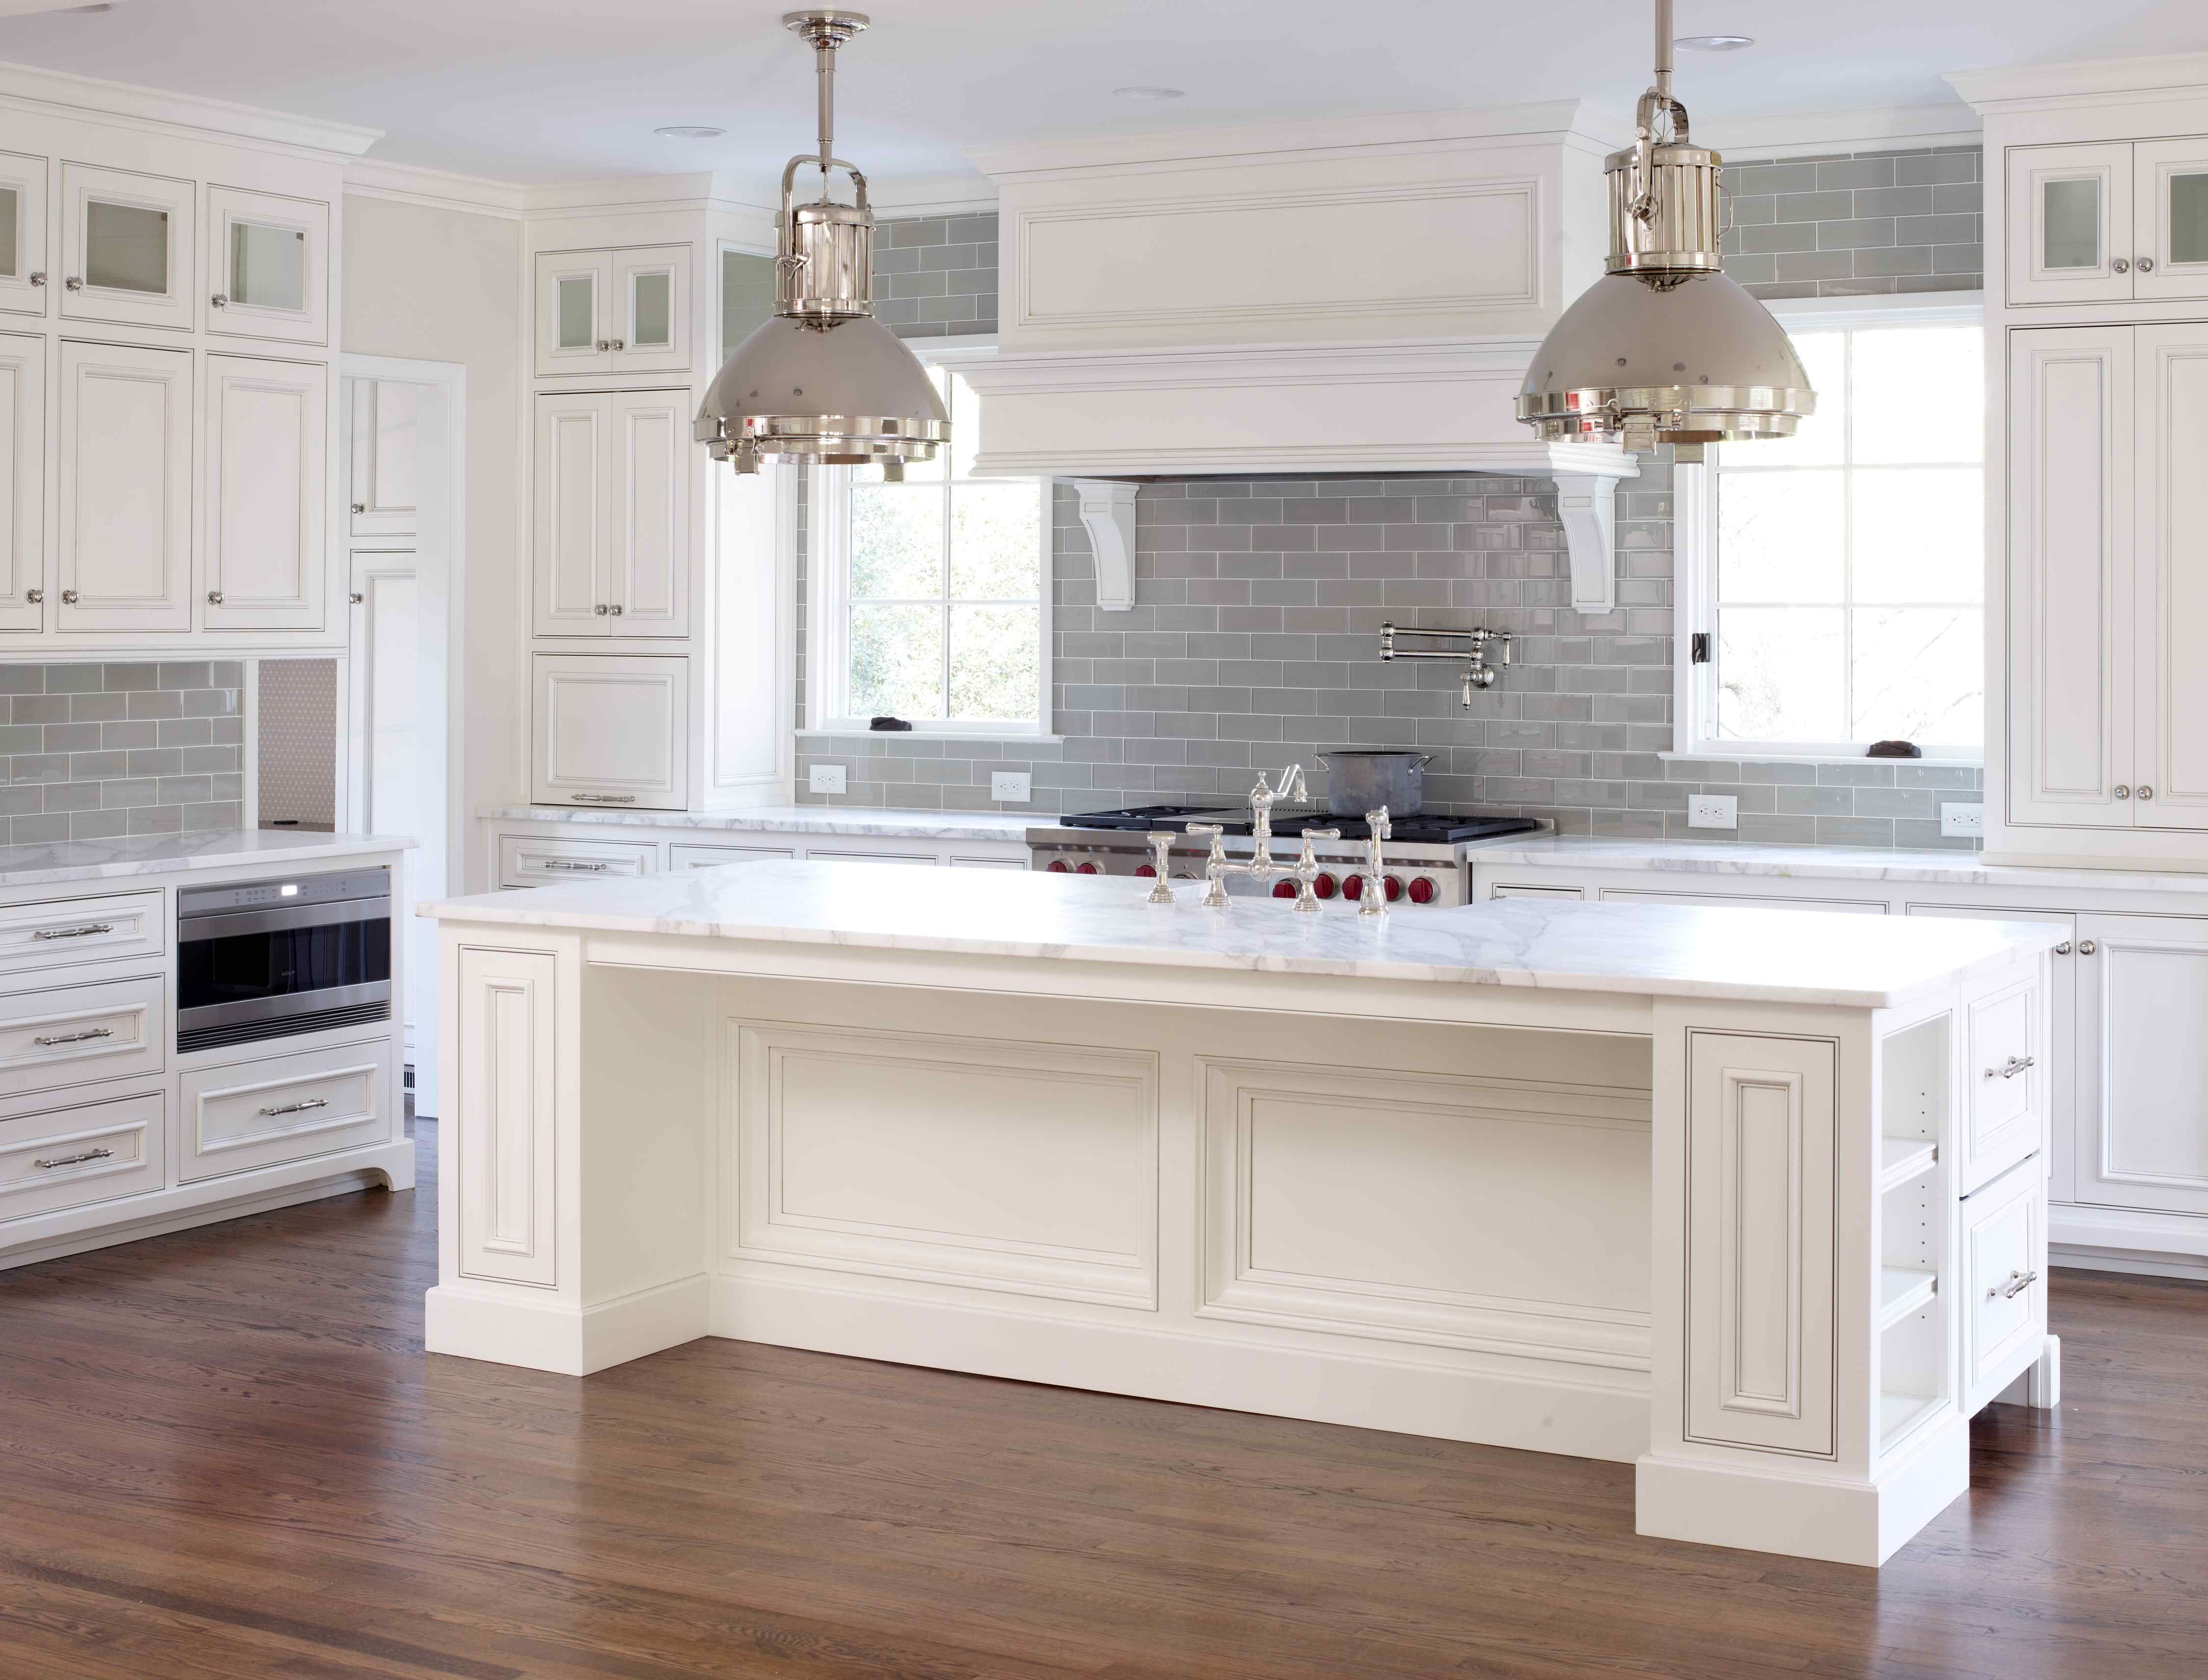 Grey Kitchen Cabinets For Sale Glass Backsplashes Kitchens Gray Tile With White All The Way Up To